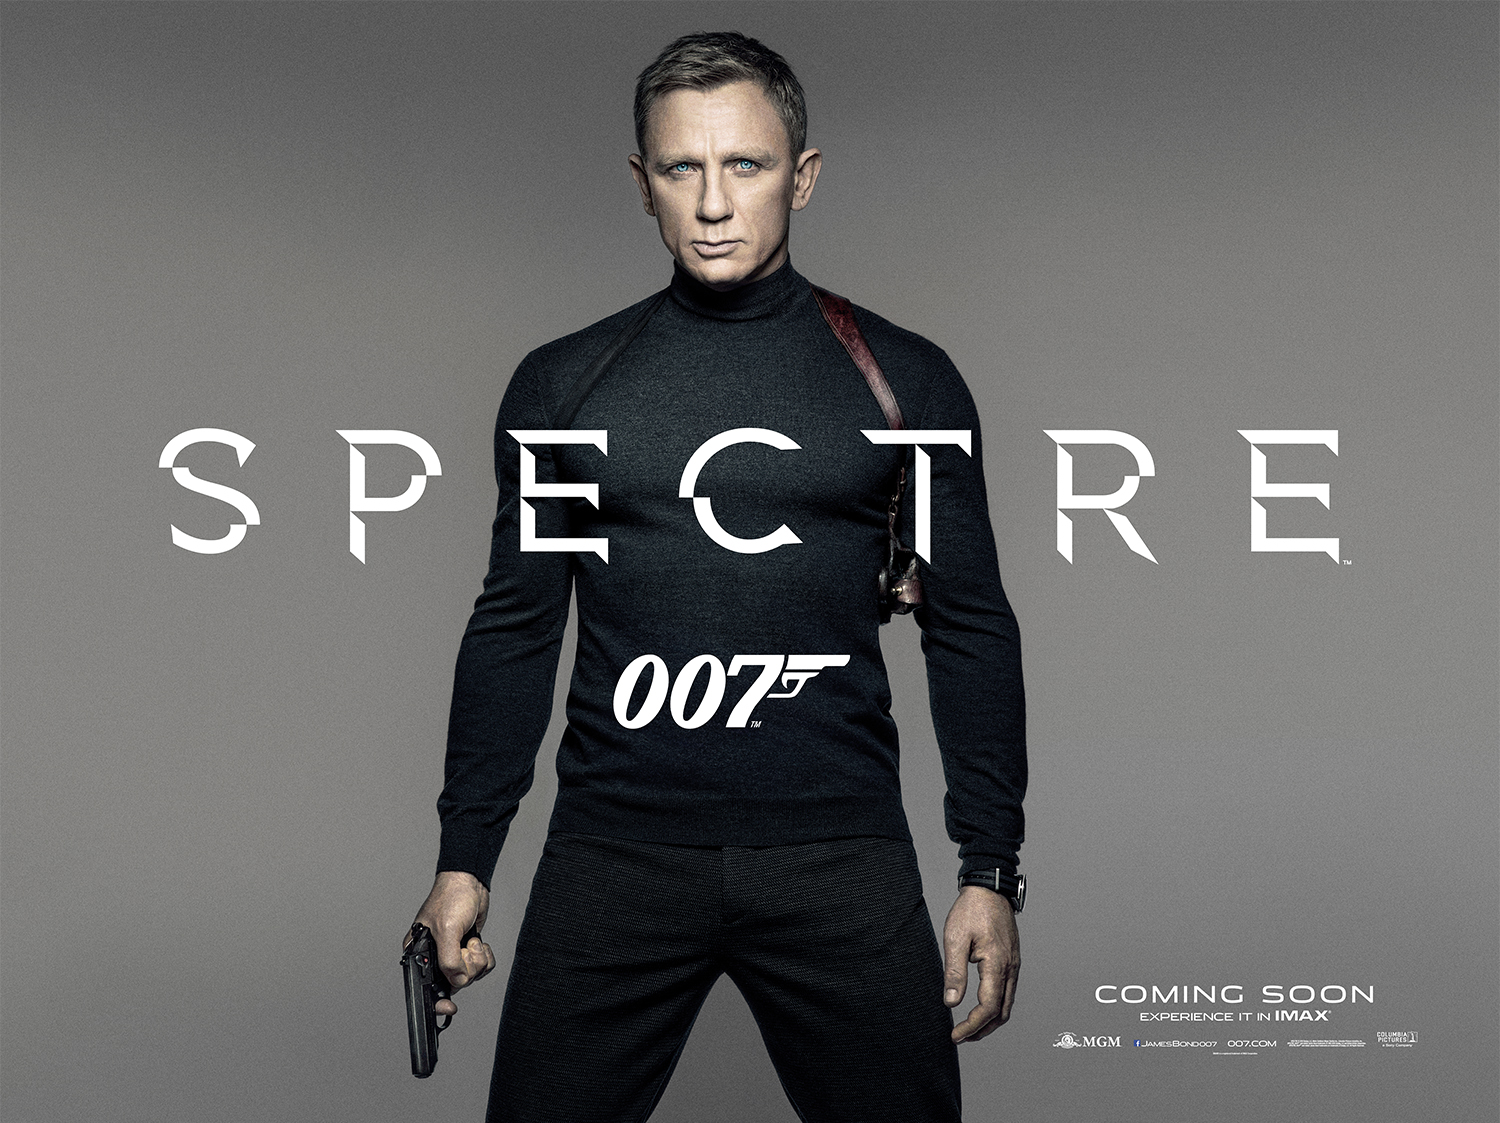 CAB to screen 'Spectre'